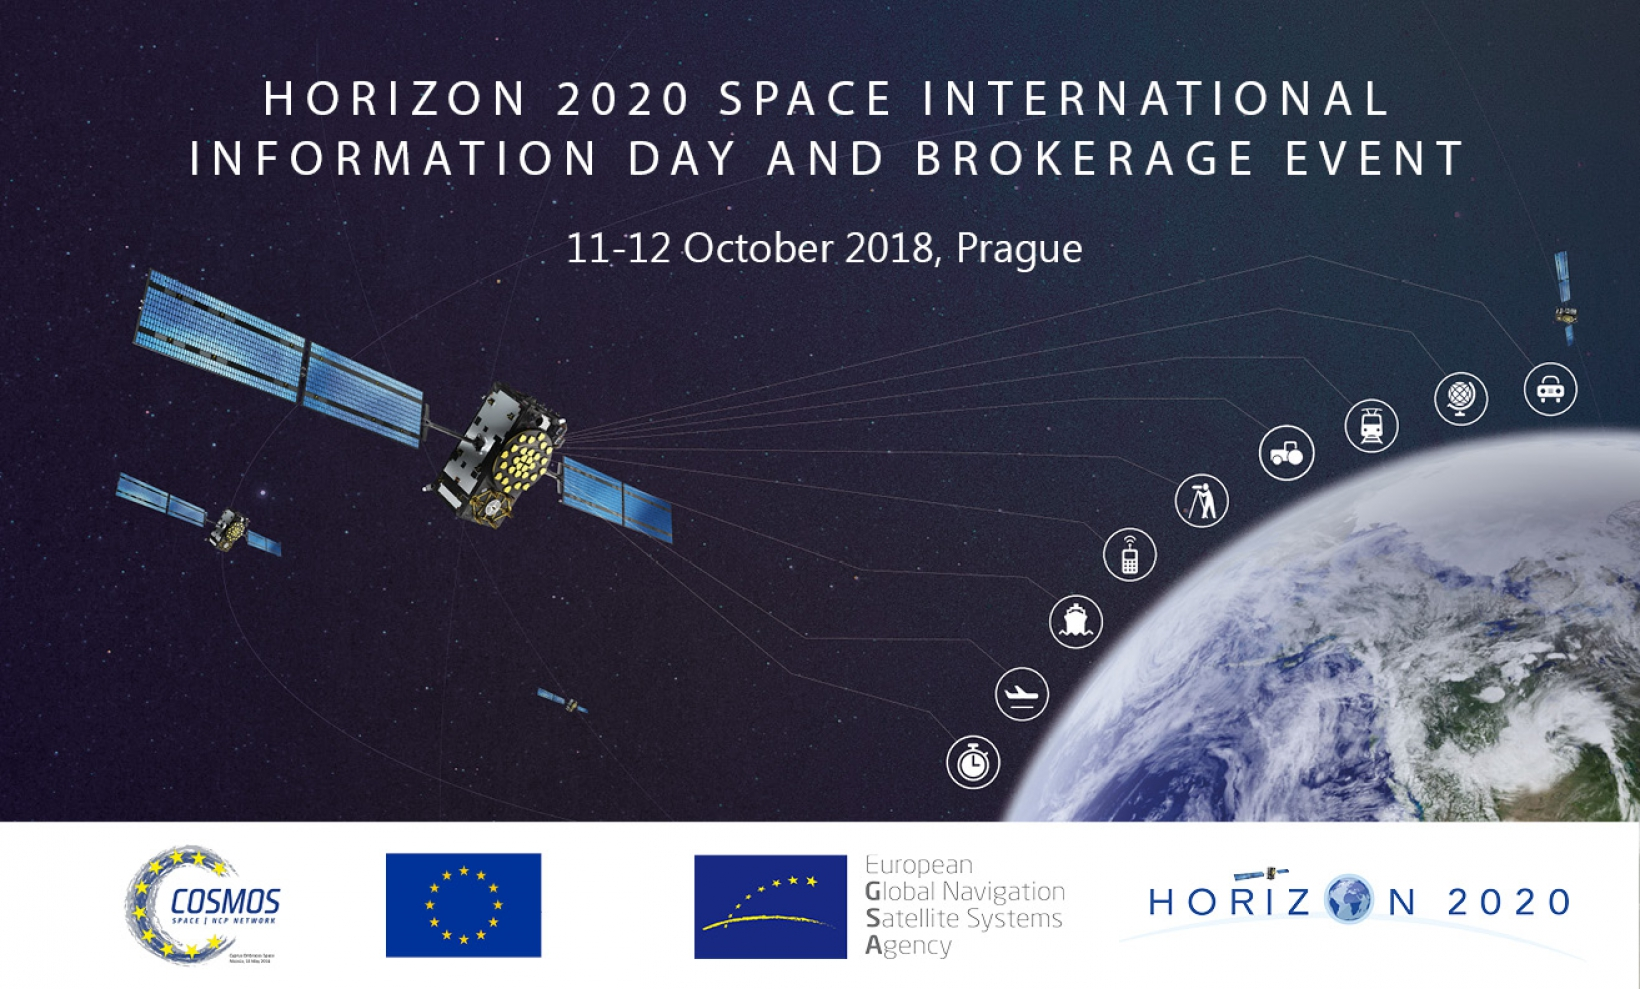 The event will inform about space opportunities in Horizon 2020 and beyond.